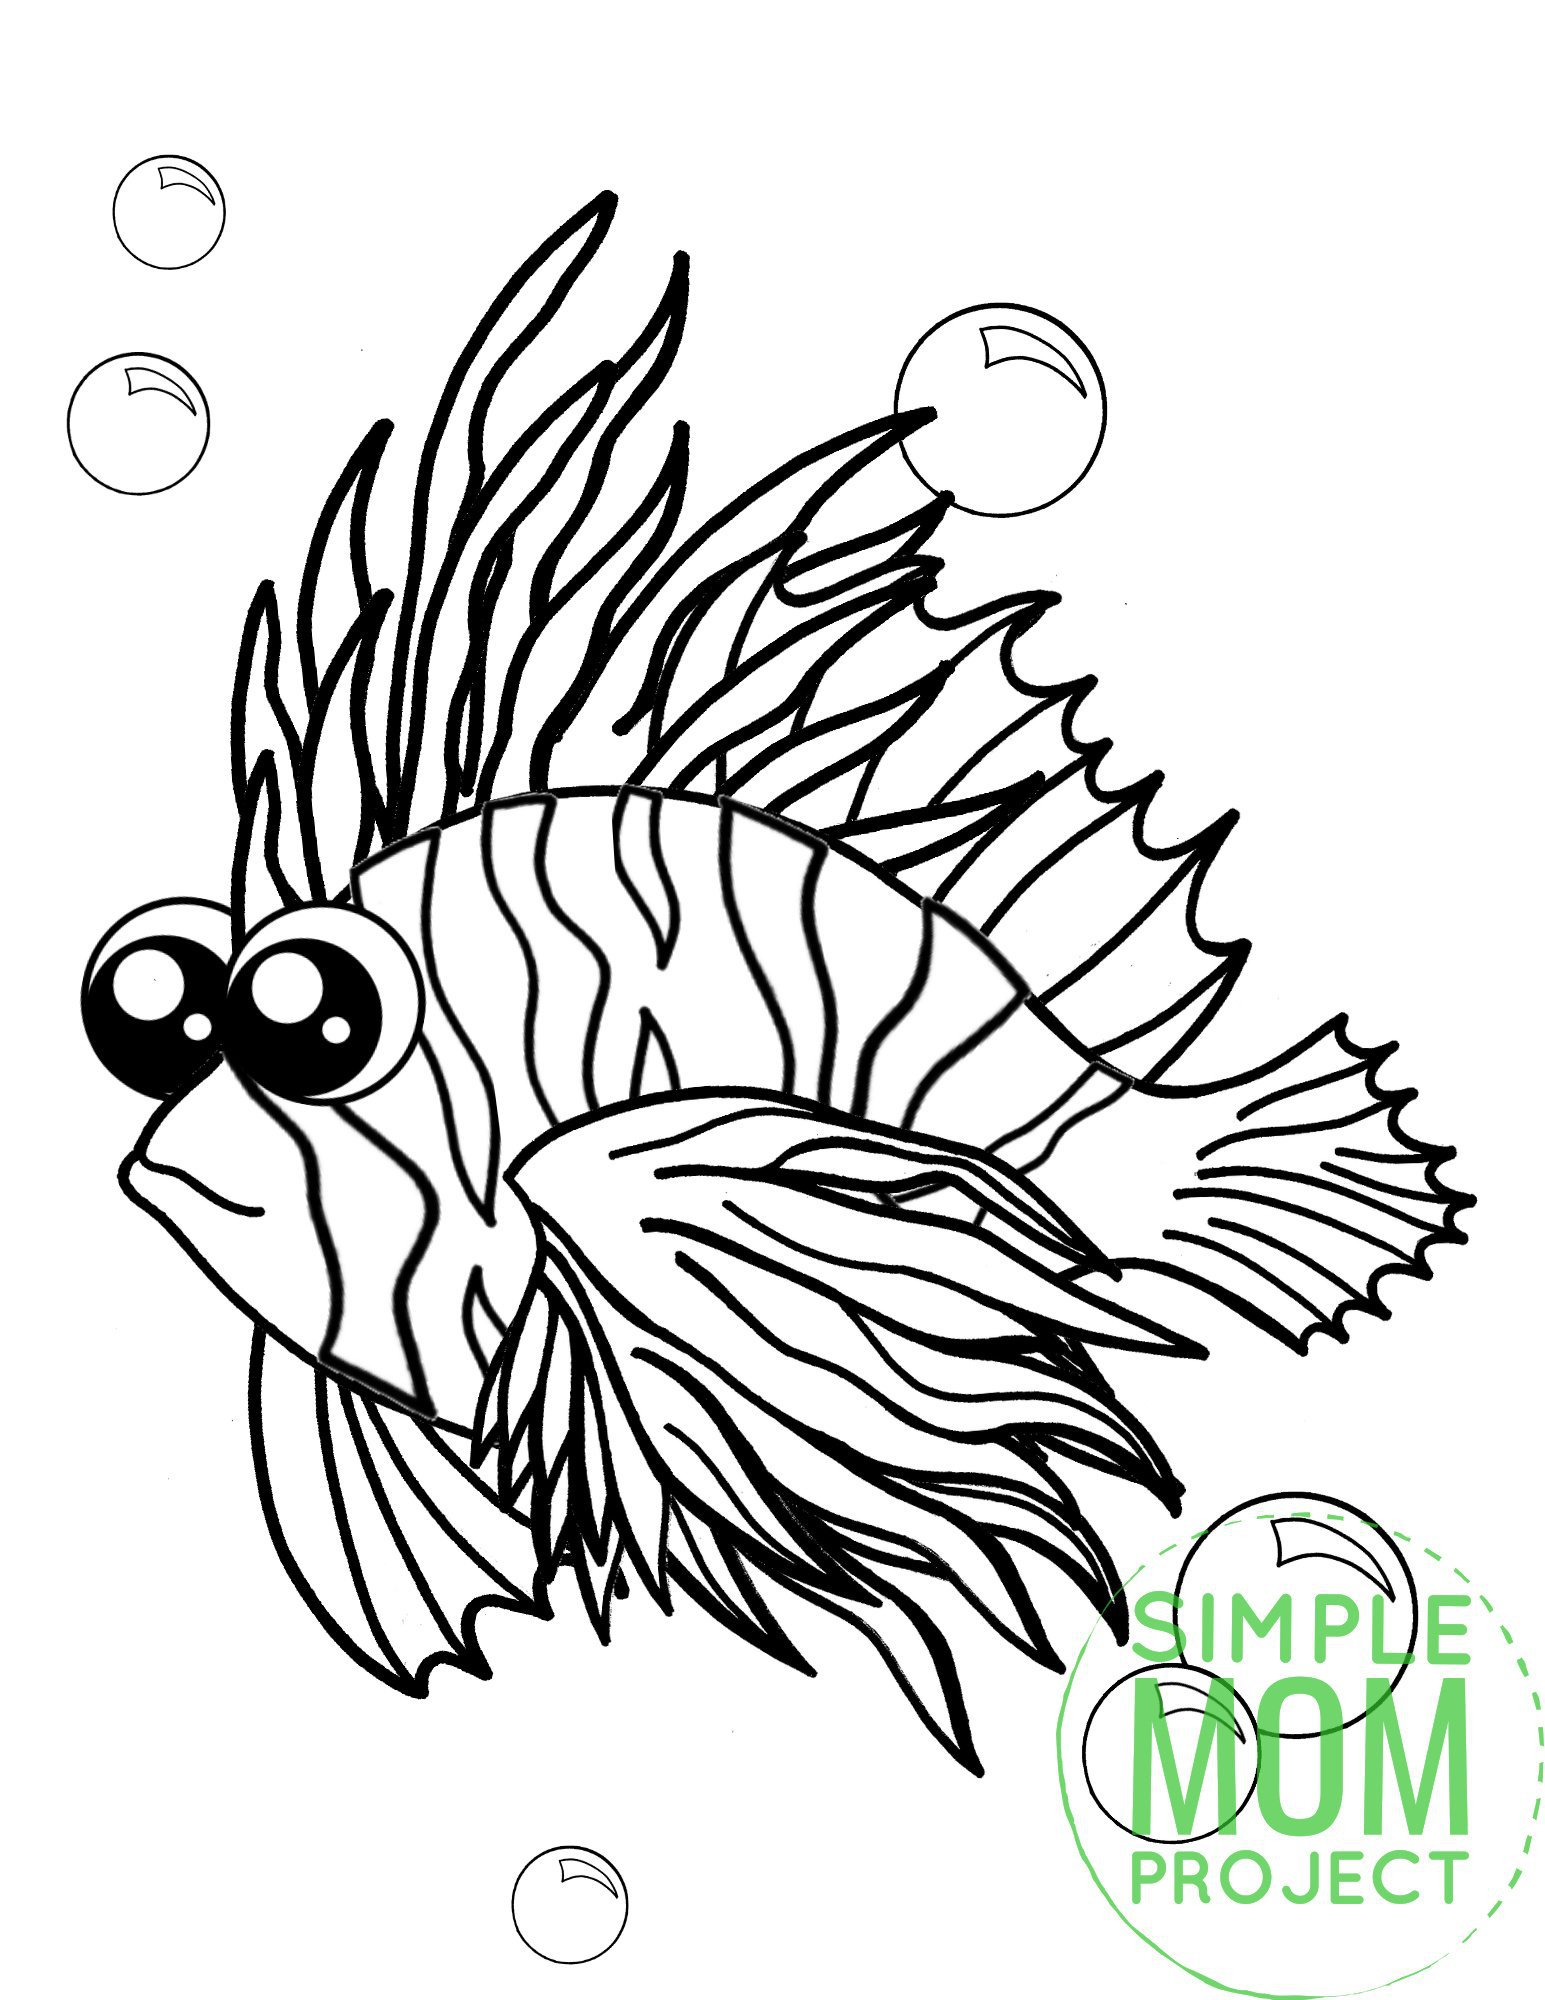 Printable Lionfish Ocean Animal Coloring Page for Kids